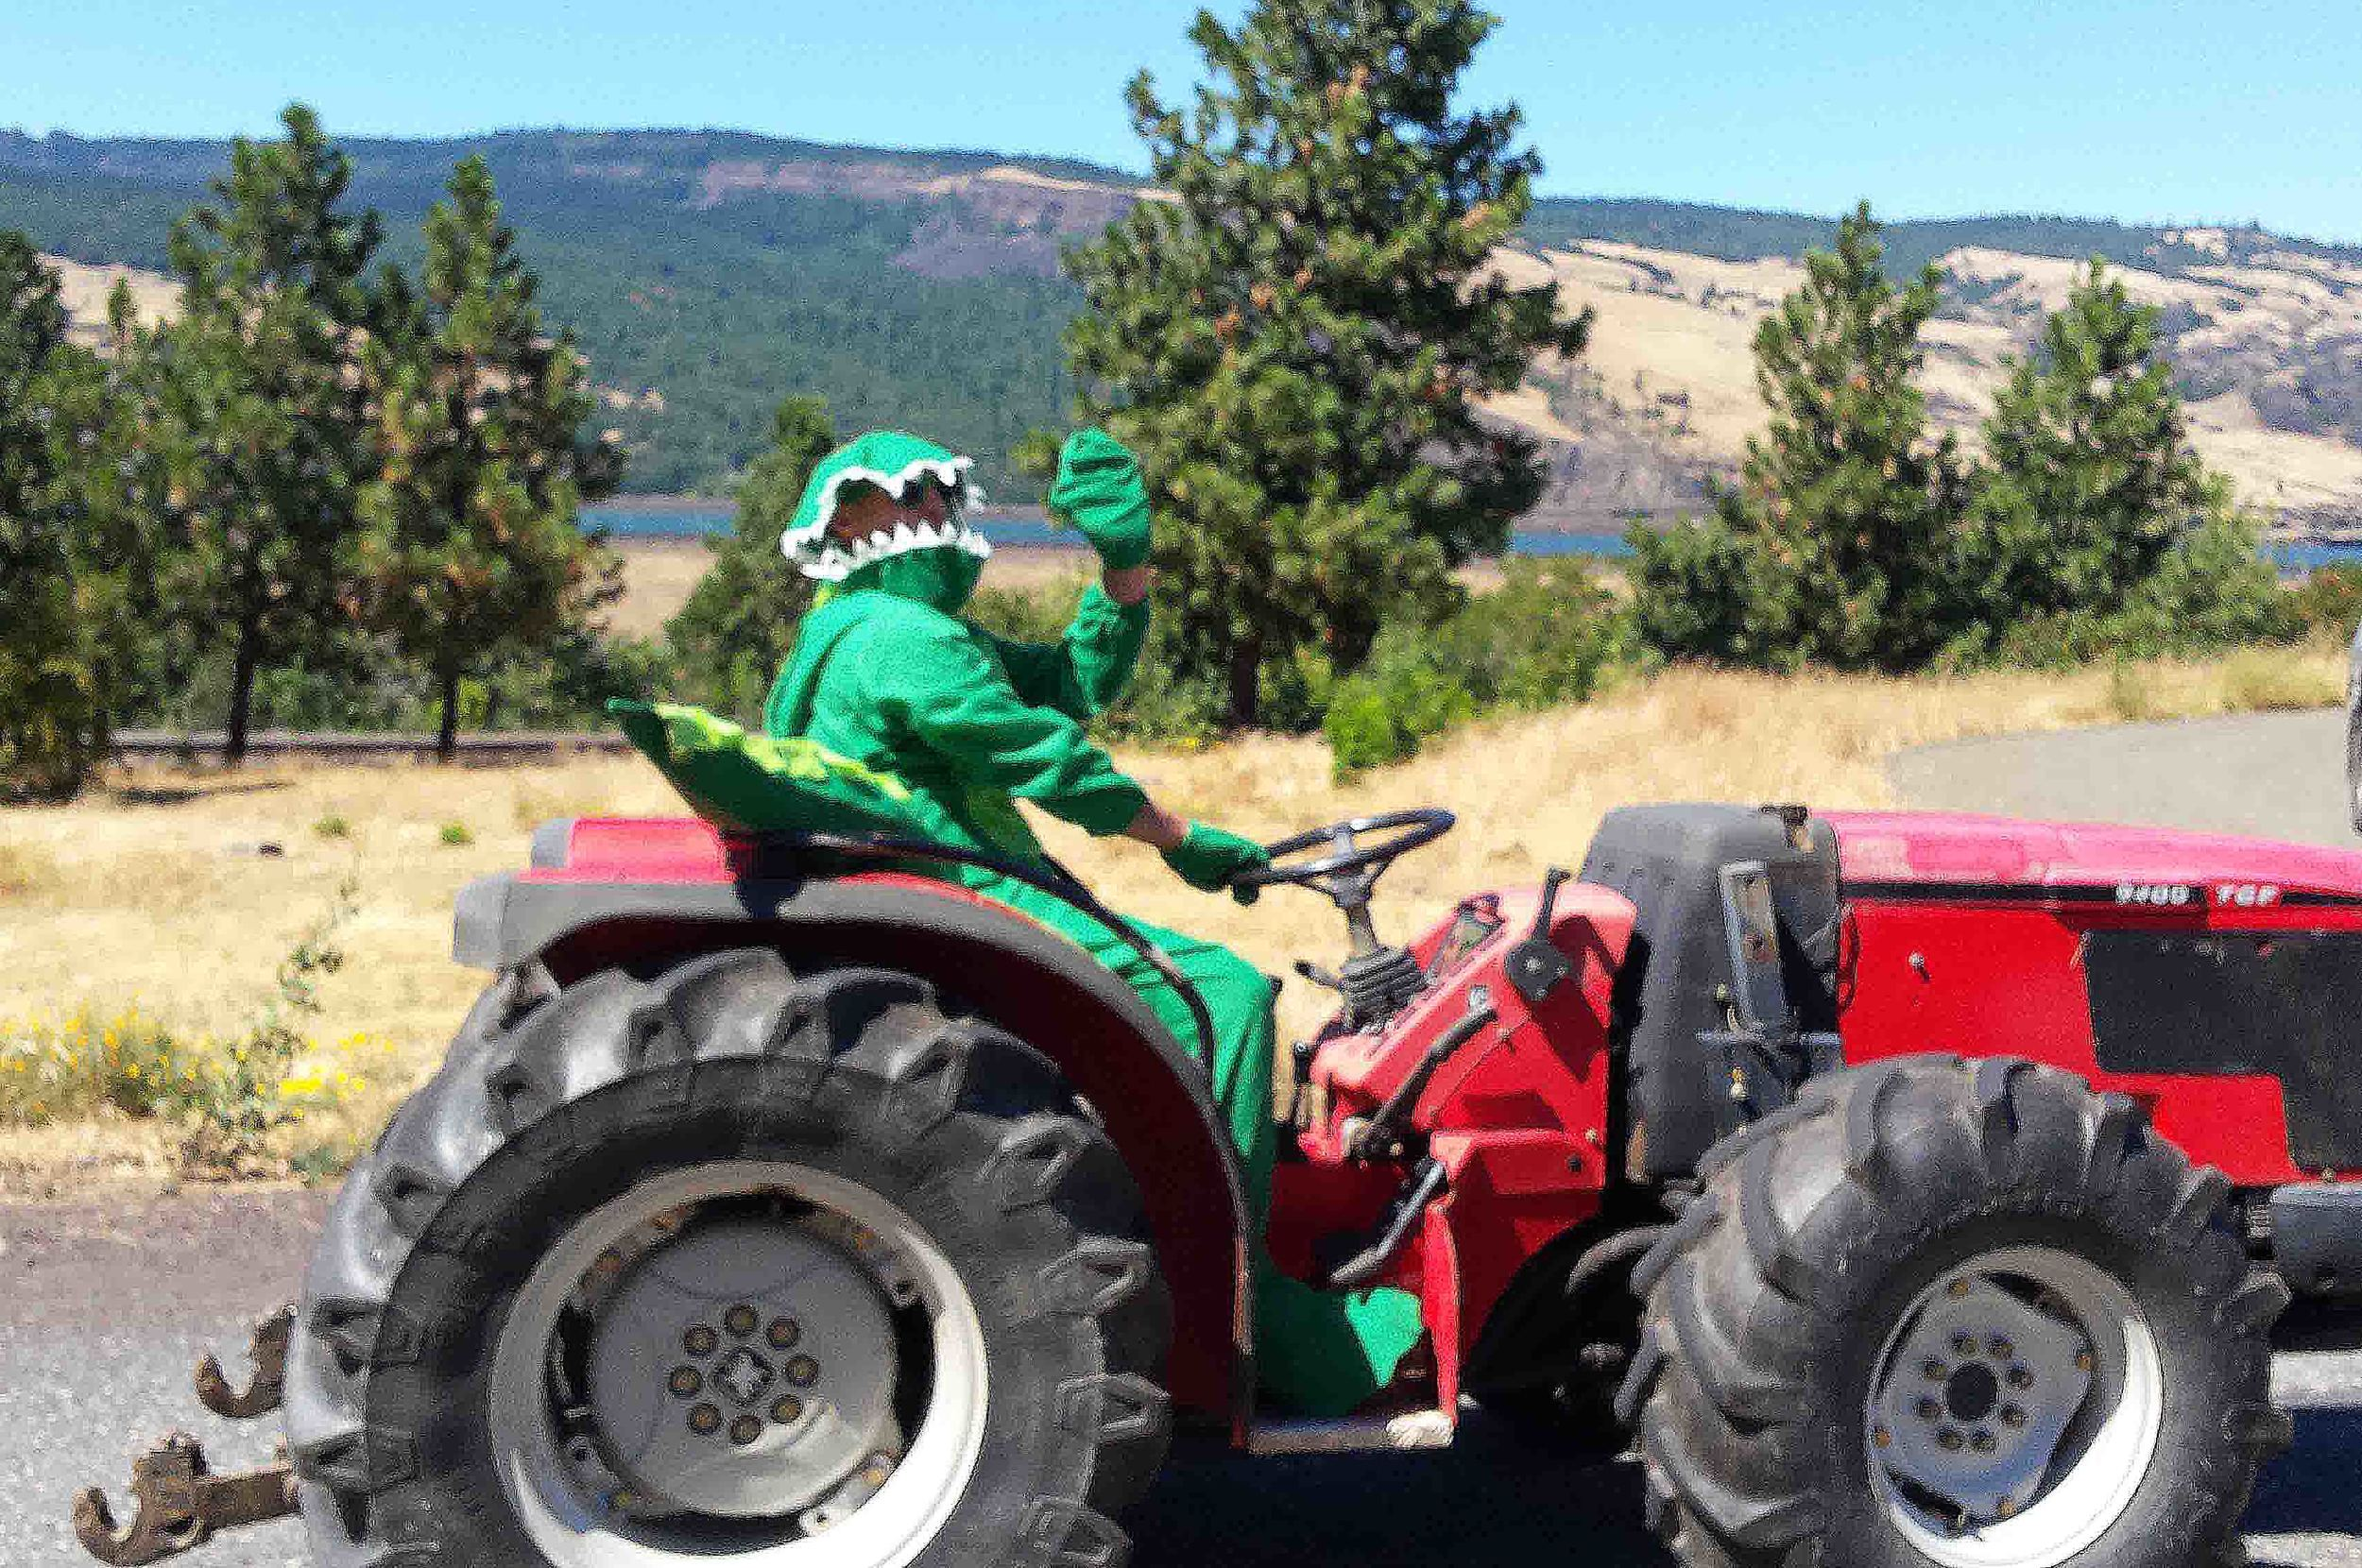 """What in the world? Maybe """"Gator on a Gator"""" in the parade?"""